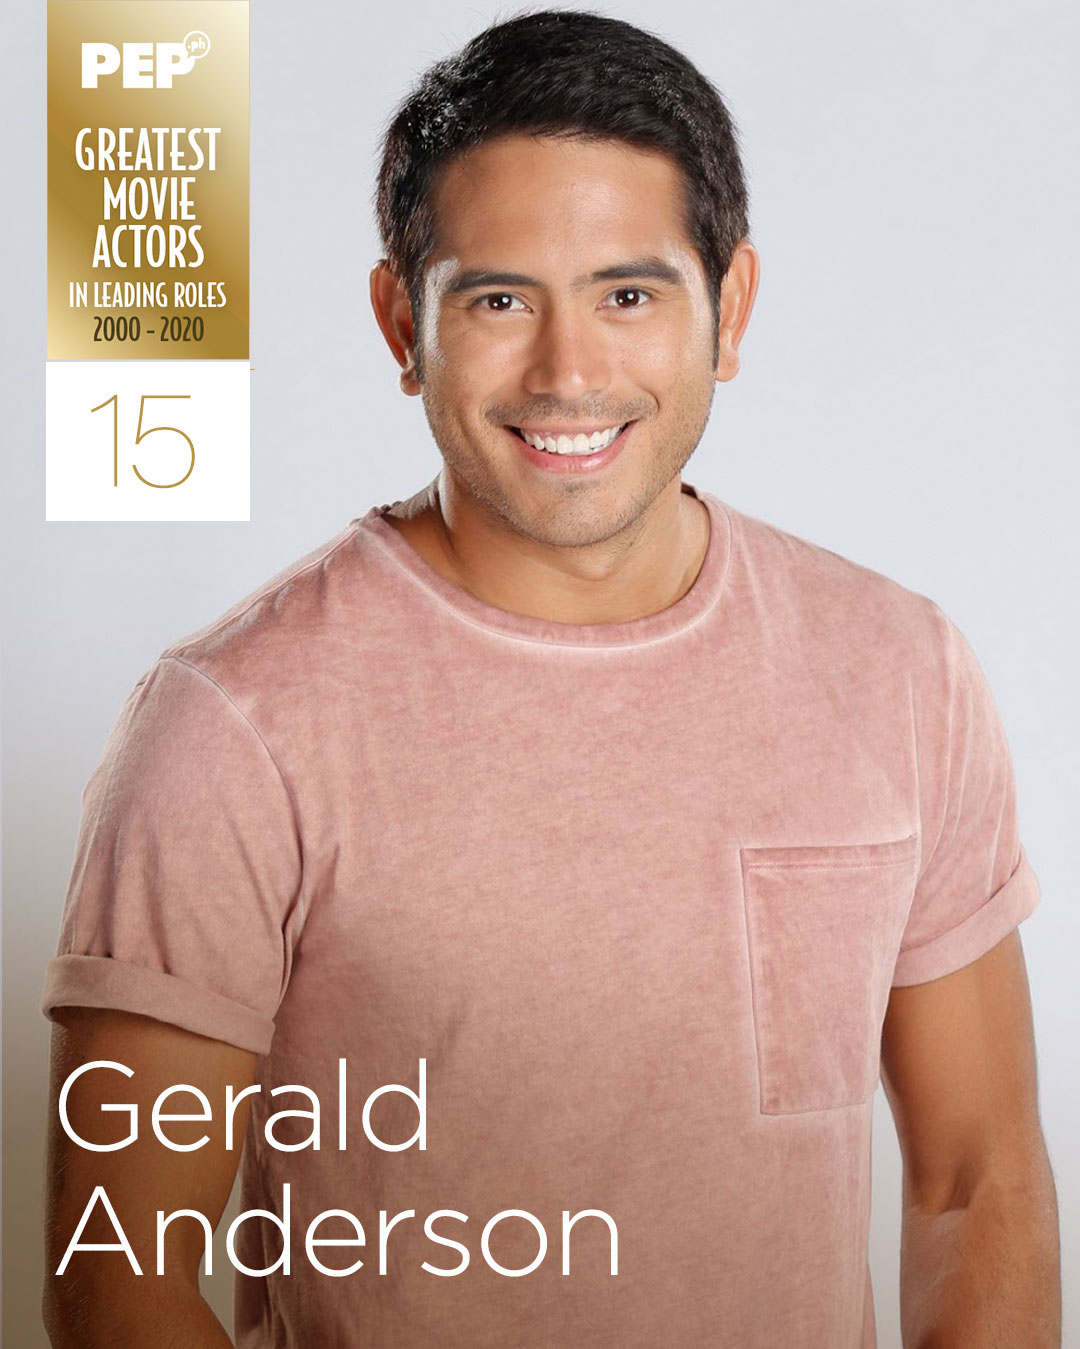 Gerald Anderson, 15 Greatest Actors in Leading Roles